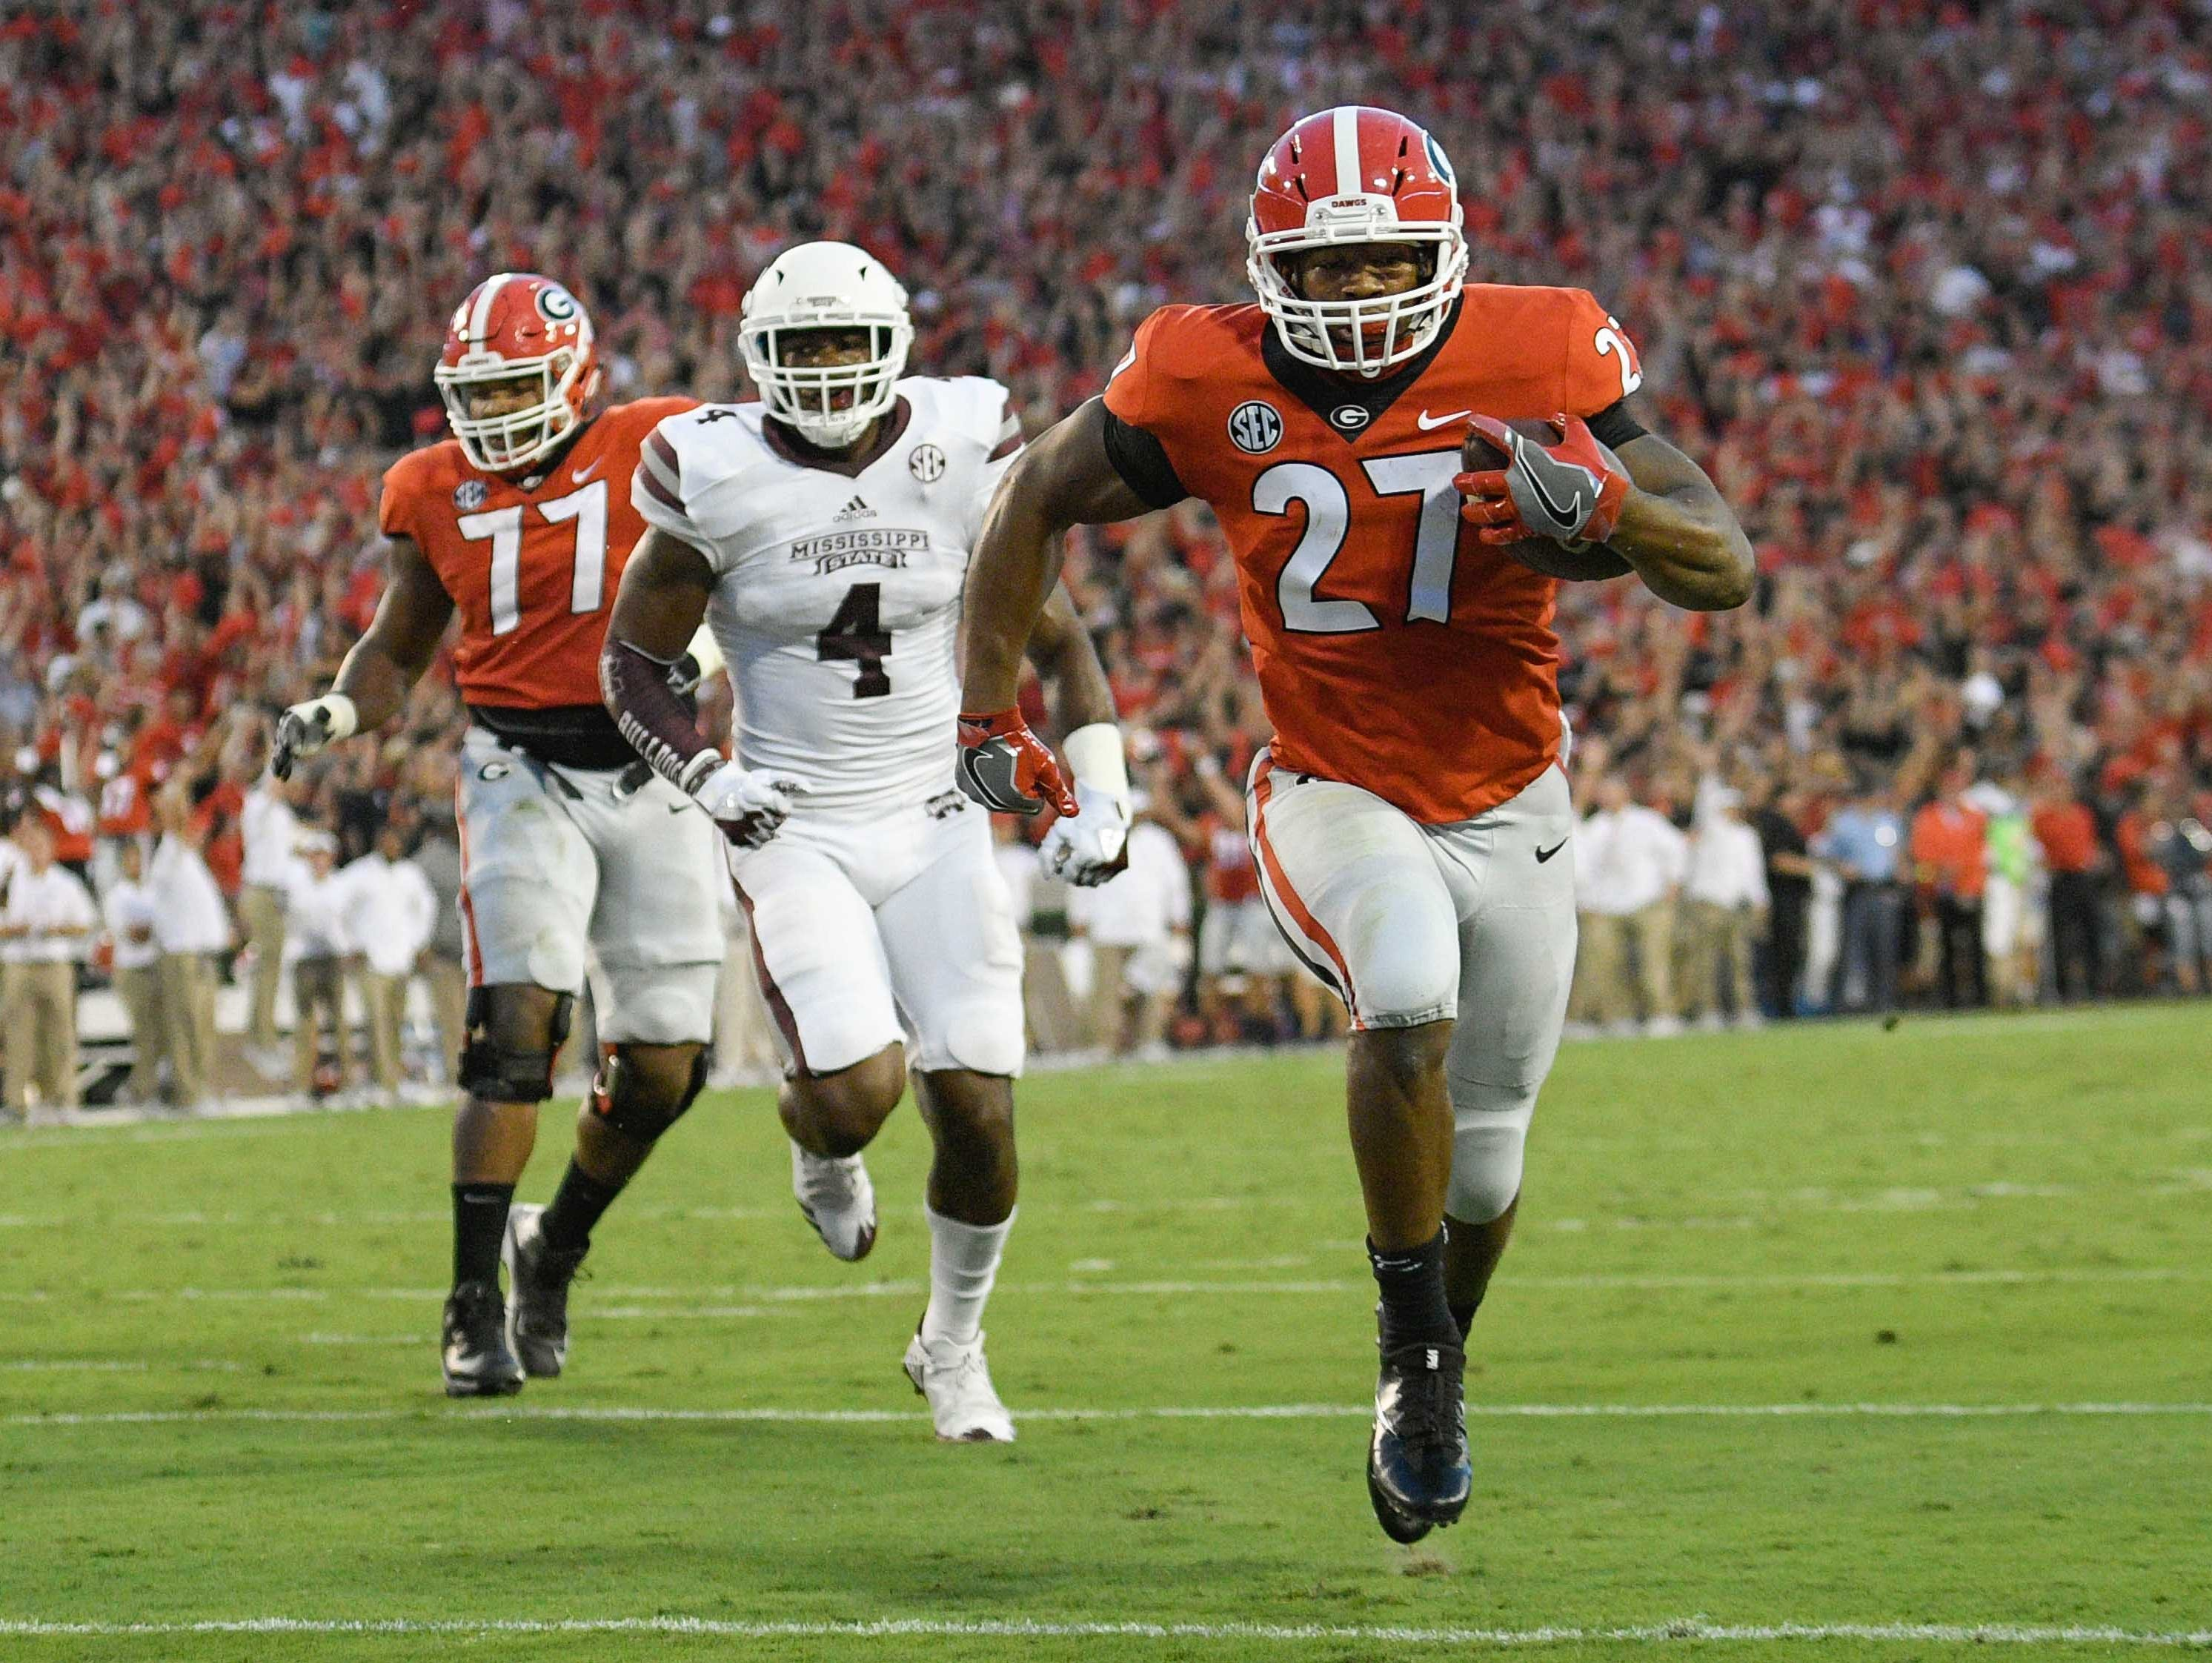 Sep 23, 2017; Athens, GA, USA; Georgia Bulldogs running back Nick Chubb (27) runs for a touchdown against the Mississippi State Bulldogs during the first quarter at Sanford Stadium. Mandatory Credit: Dale Zanine-USA TODAY Sports